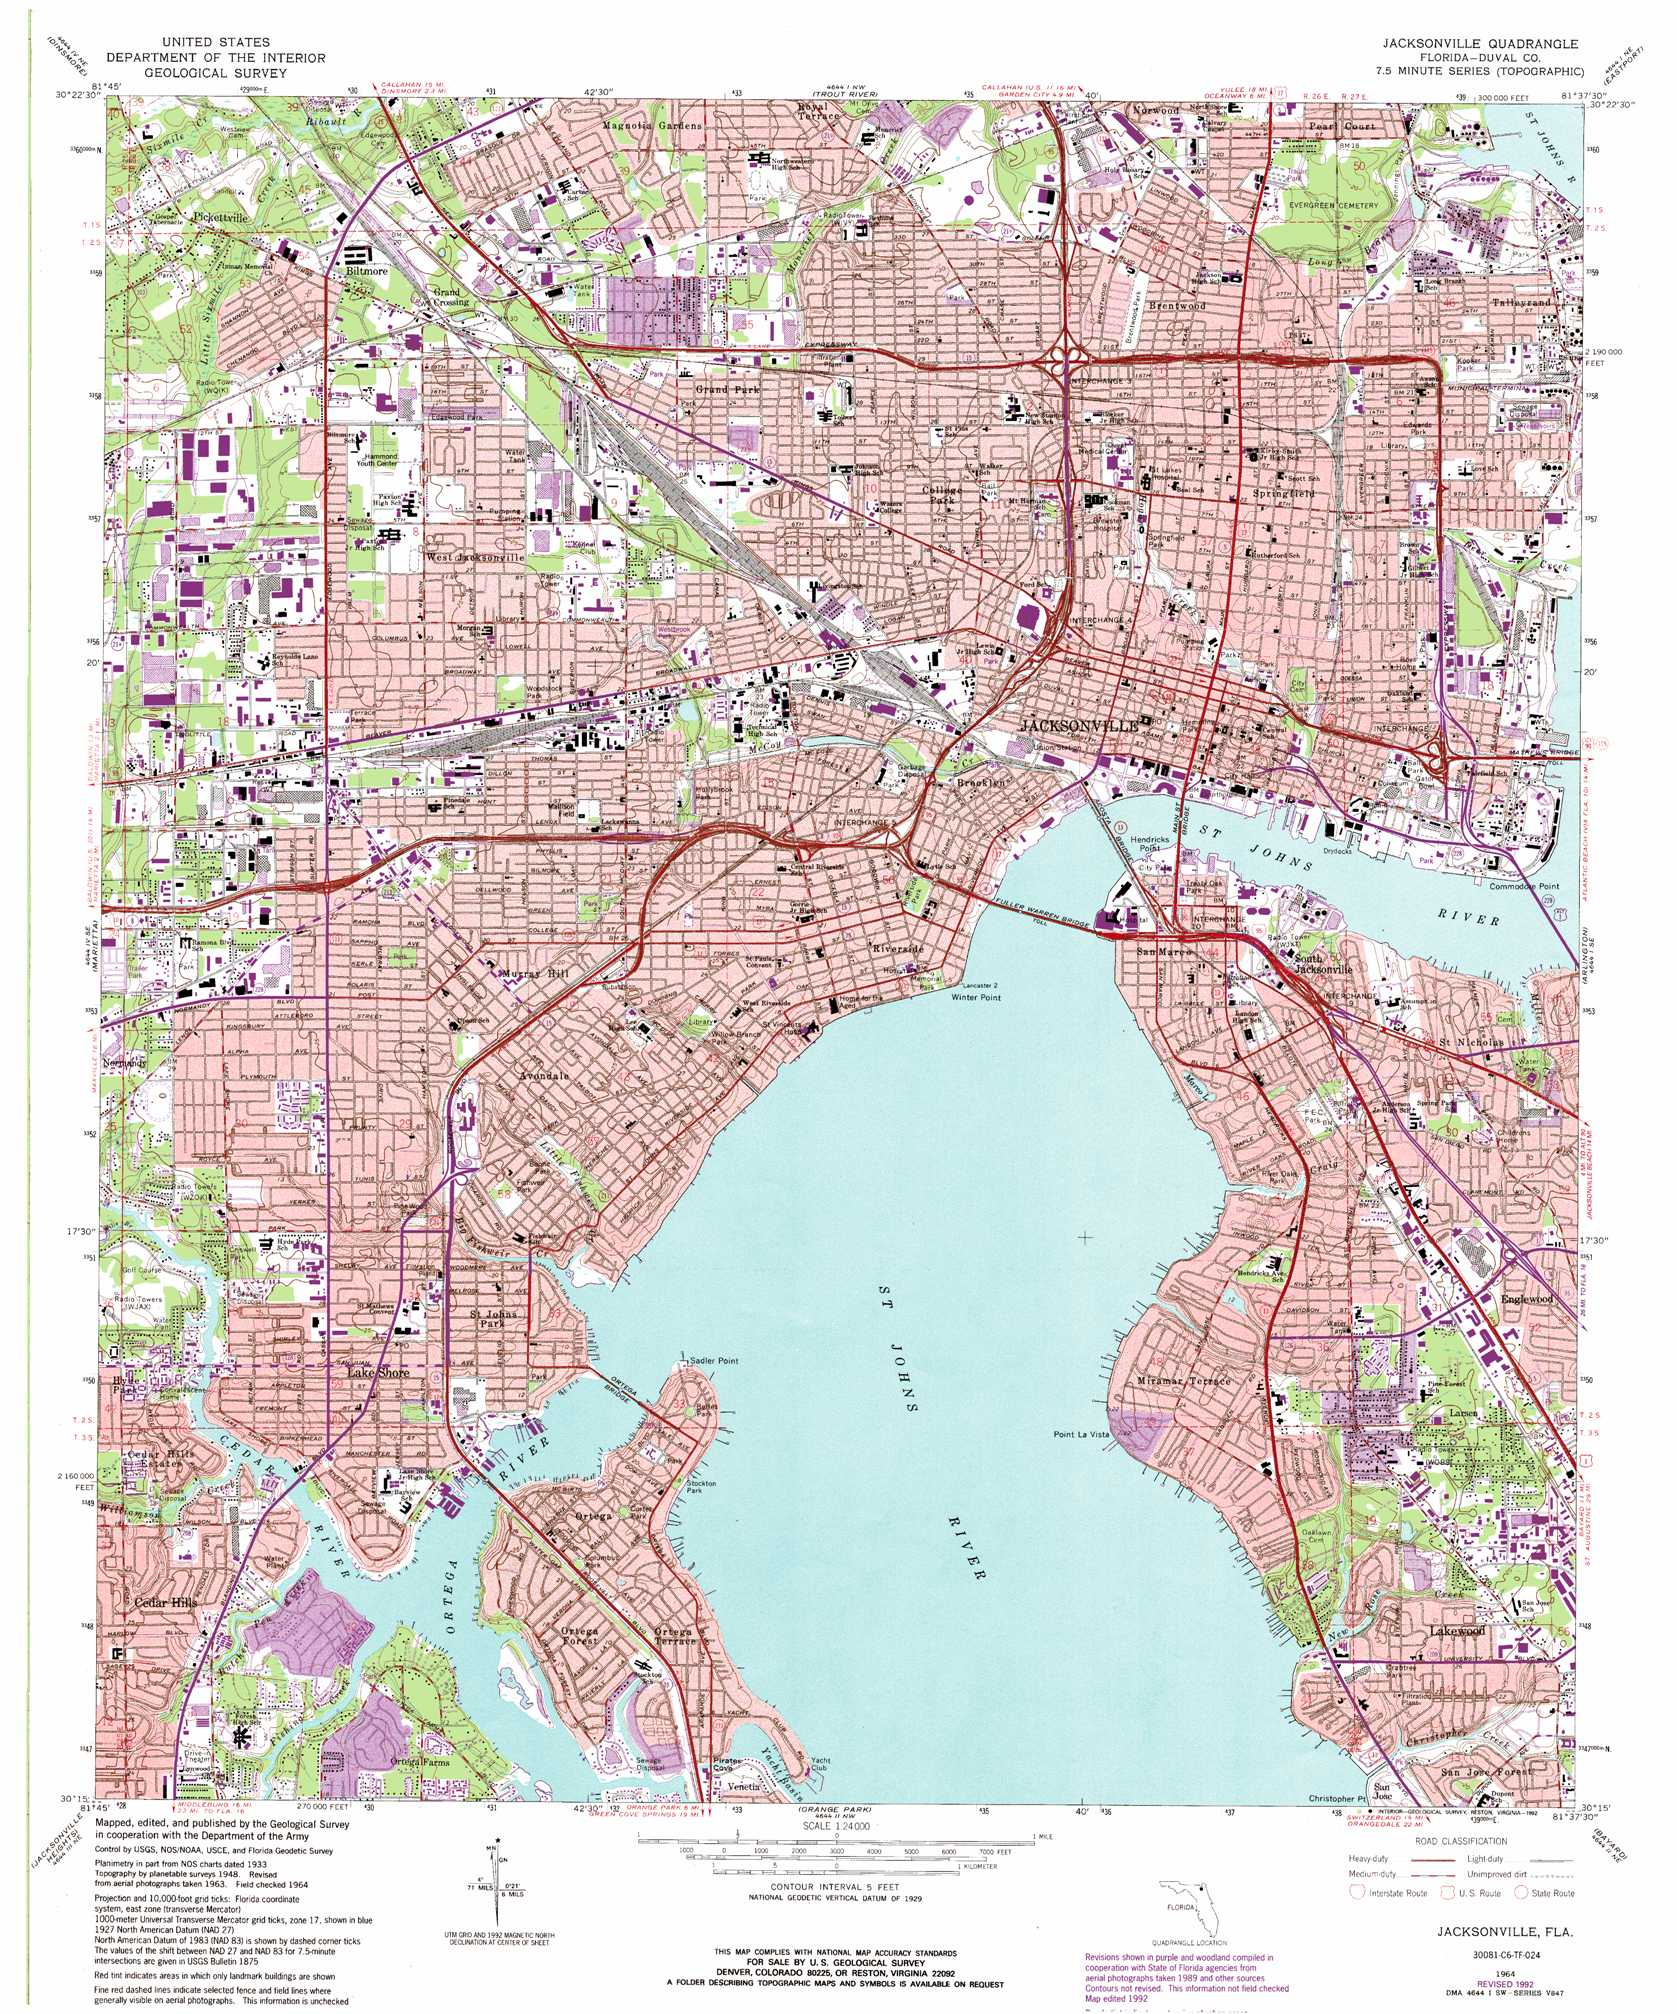 Fl Topographic Map.Topographic Map Of Jacksonville Florida Www Sham Store